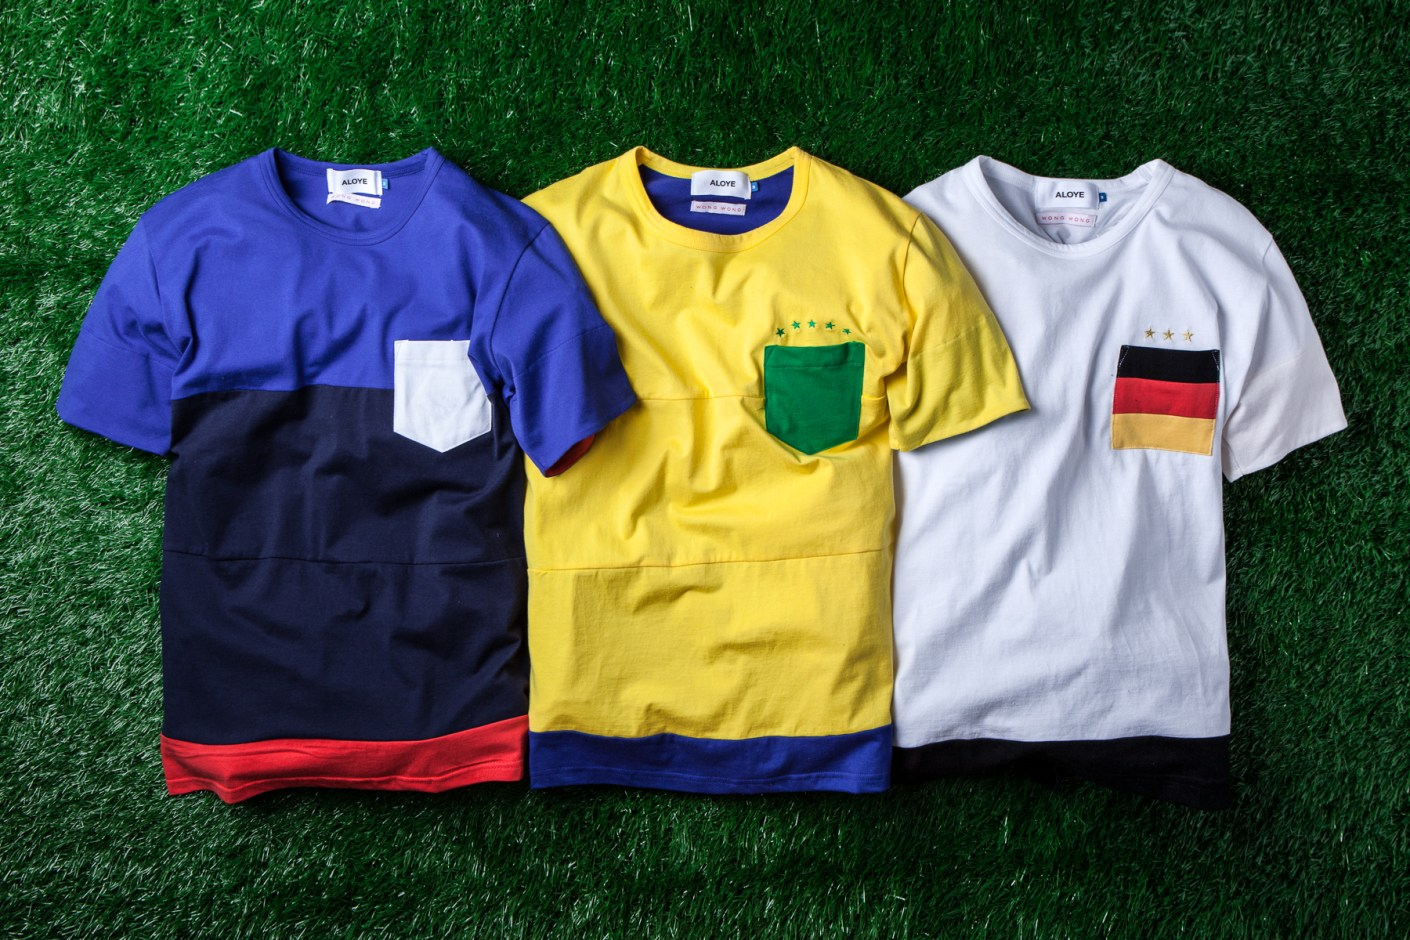 Image of ALOYE x WONG WONG 2014 Brasil Collection